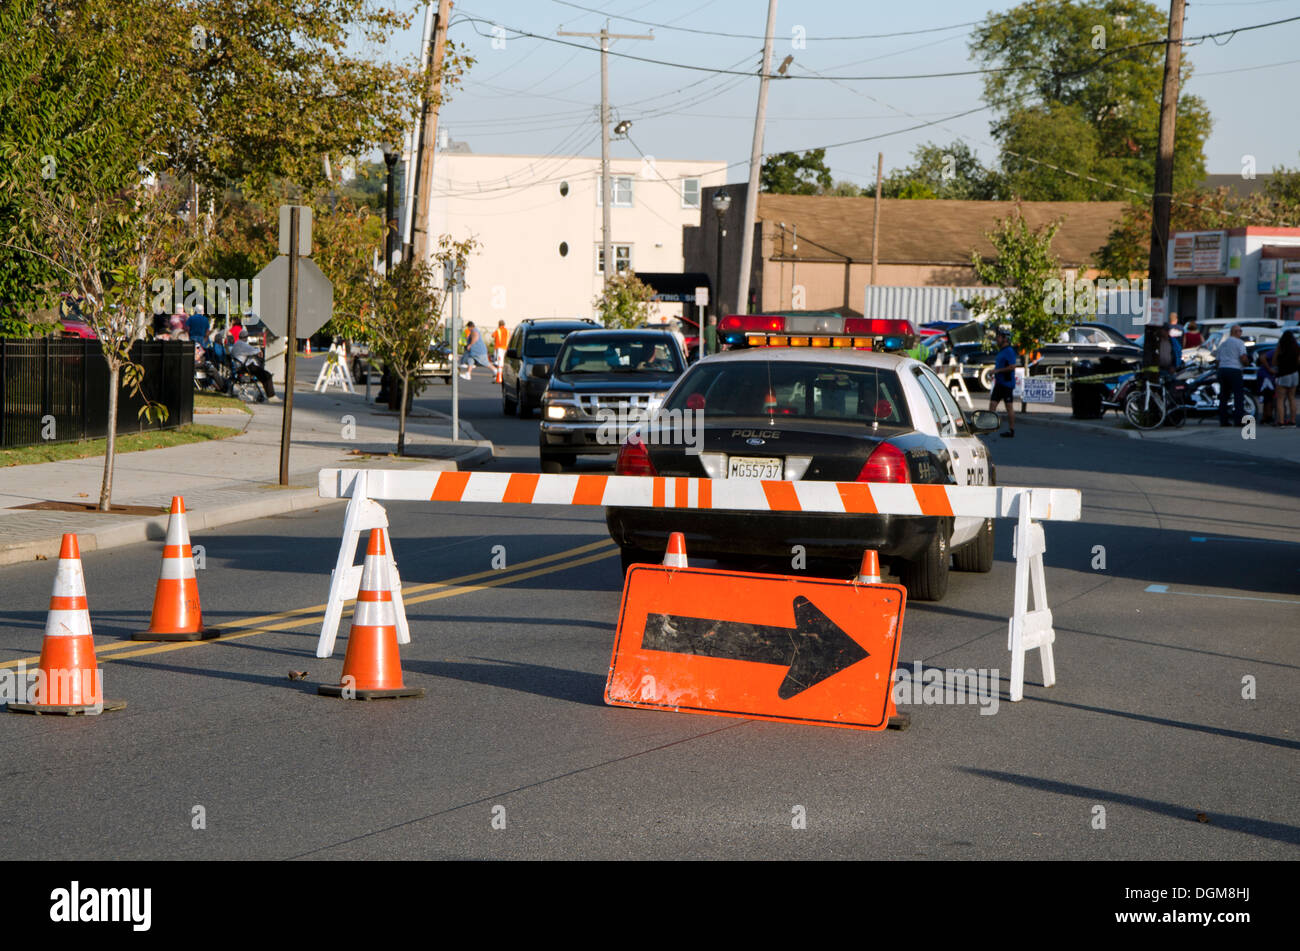 Construction Traffic Control : Police roadblock with detour for traffic control new